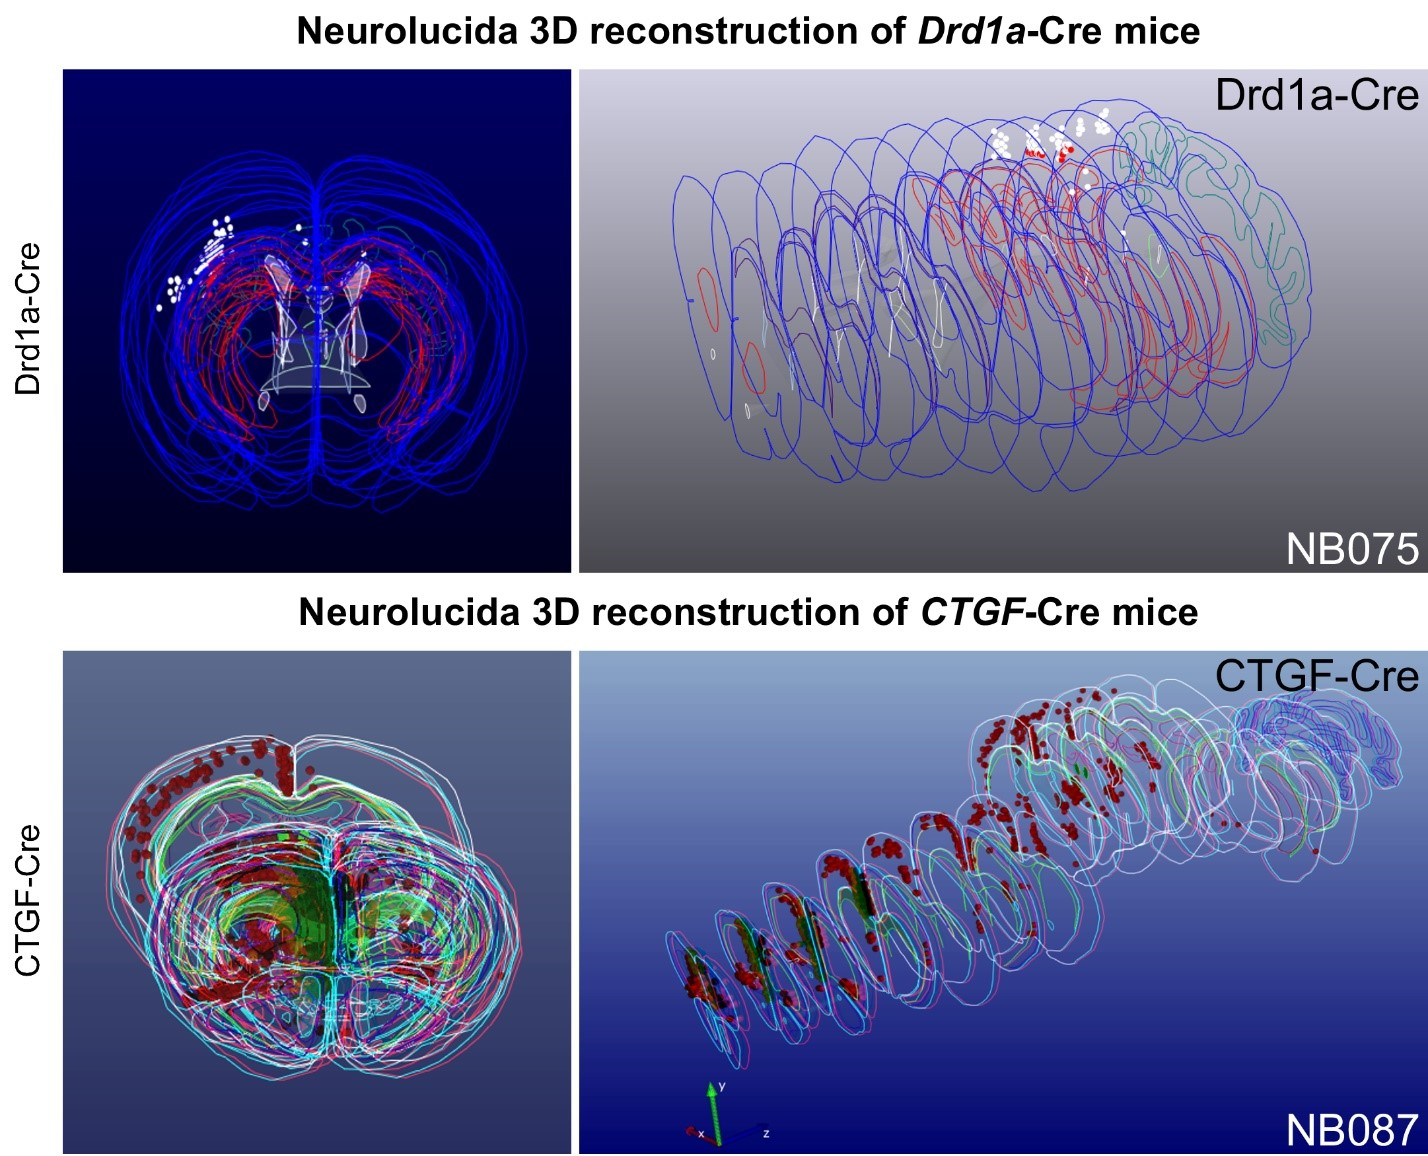 neurolucida 3D reconstructions of Drd1a-Cre mice and CTGF-Cre mice